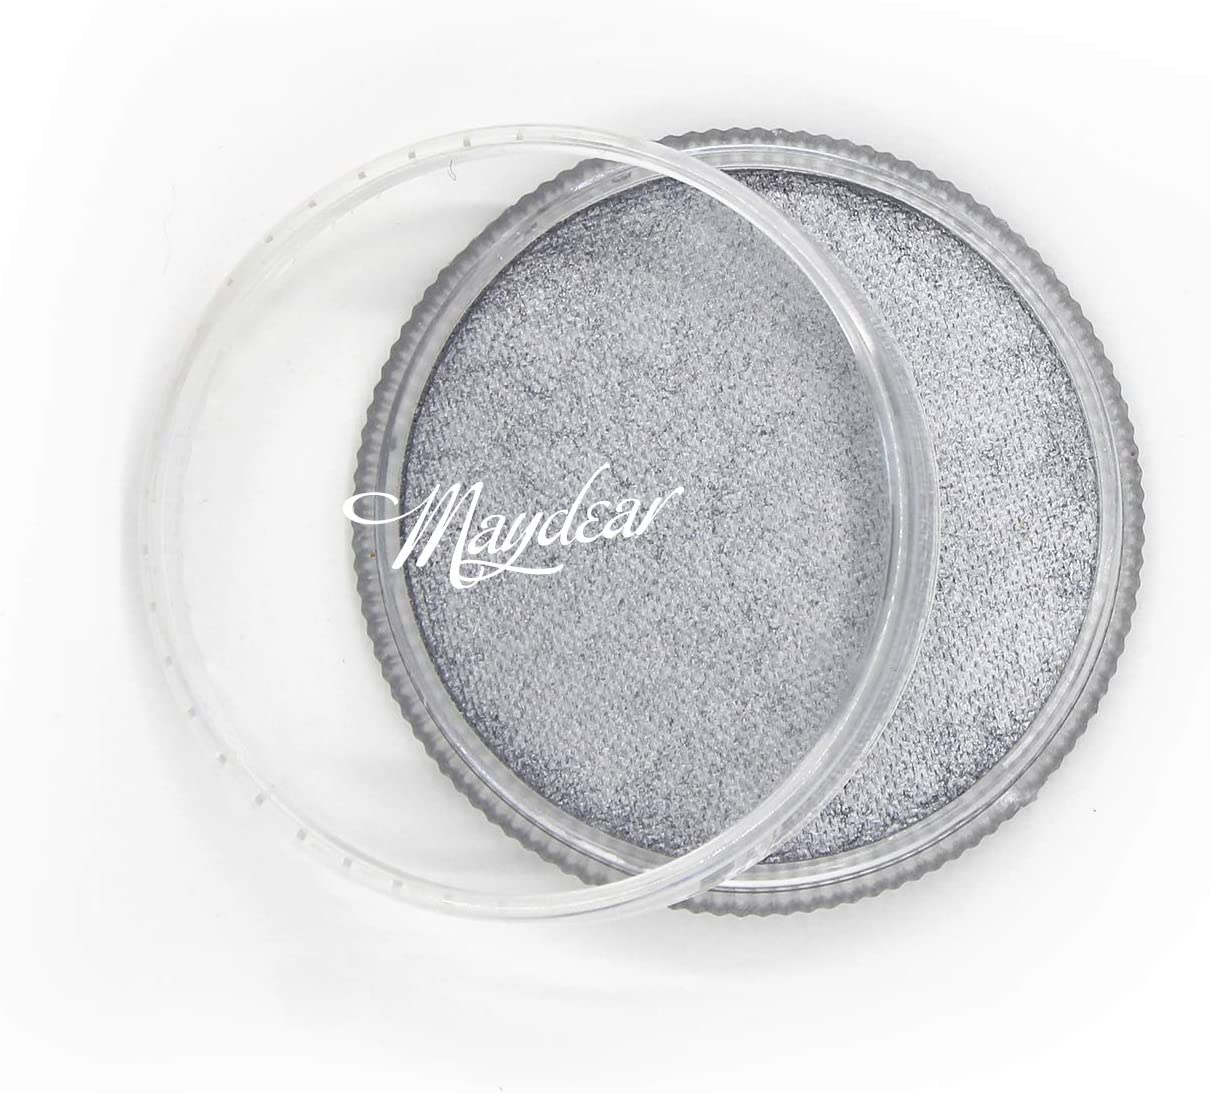 Maydear Face Body Paint, Classic Single, Professional Face Paint Palette,Large Water Based Paints (30g) (Metallic Silver)